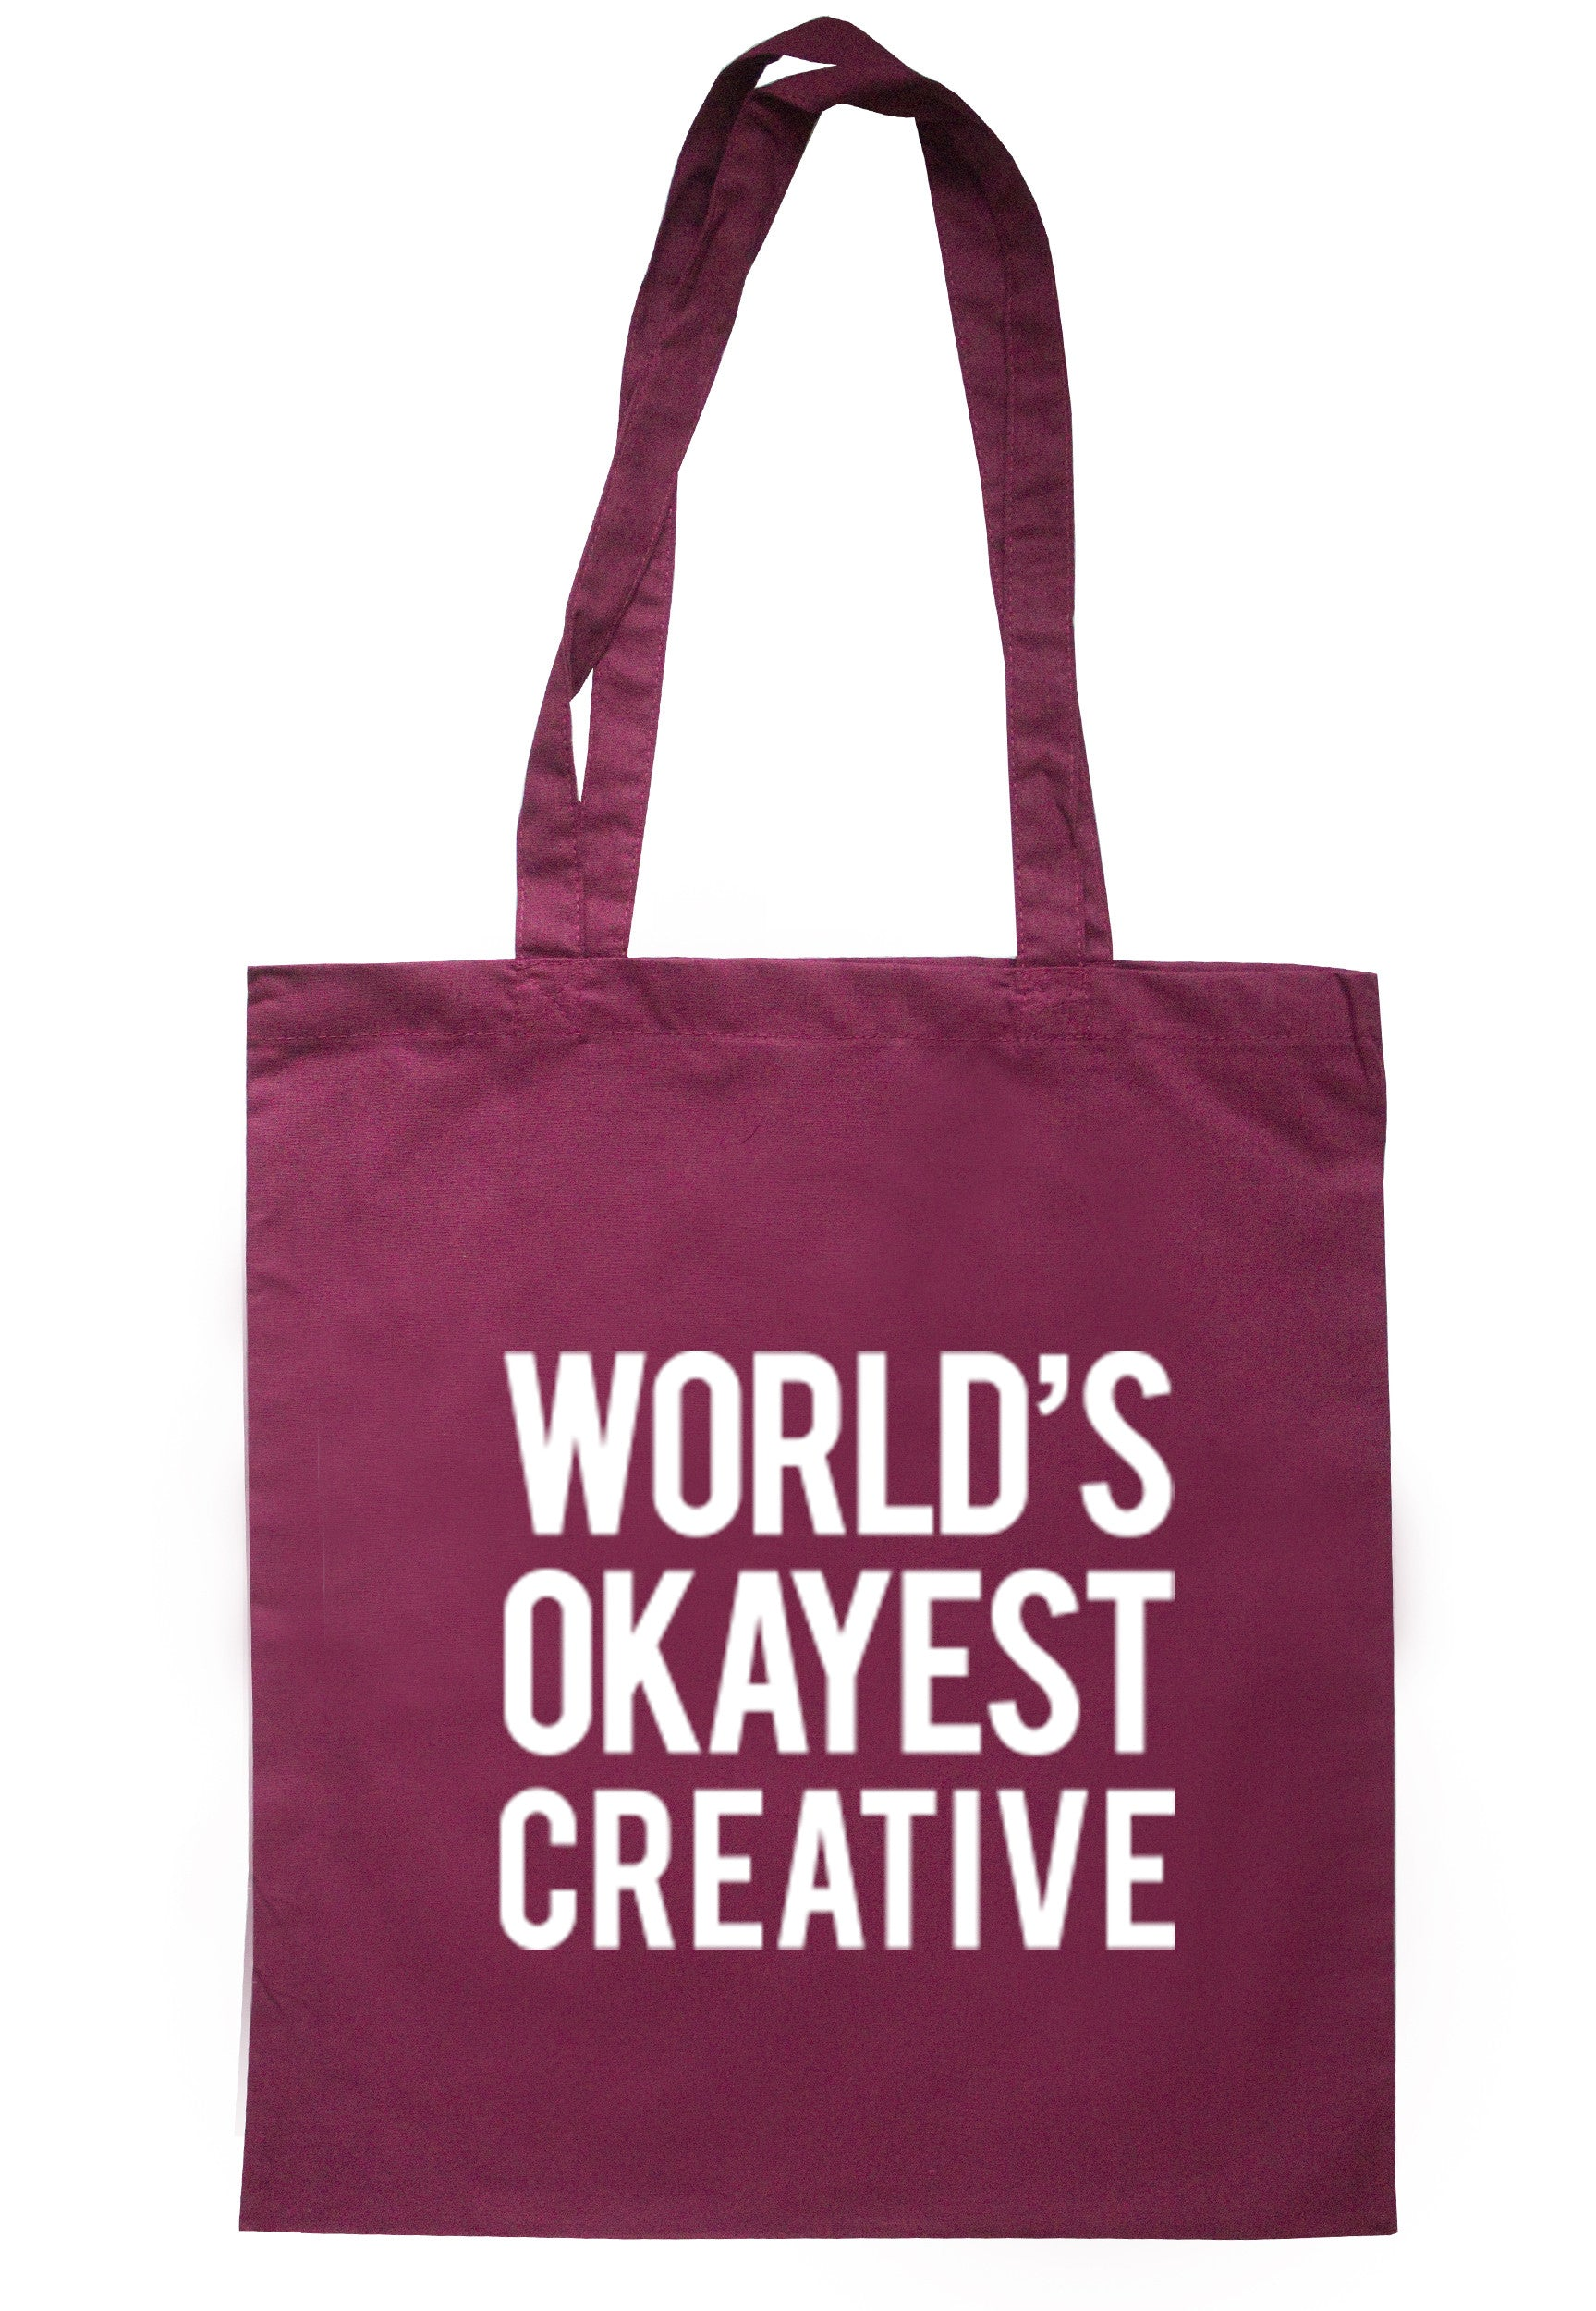 Worlds Okayest Creative Tote Bag TB0284 - Illustrated Identity Ltd.